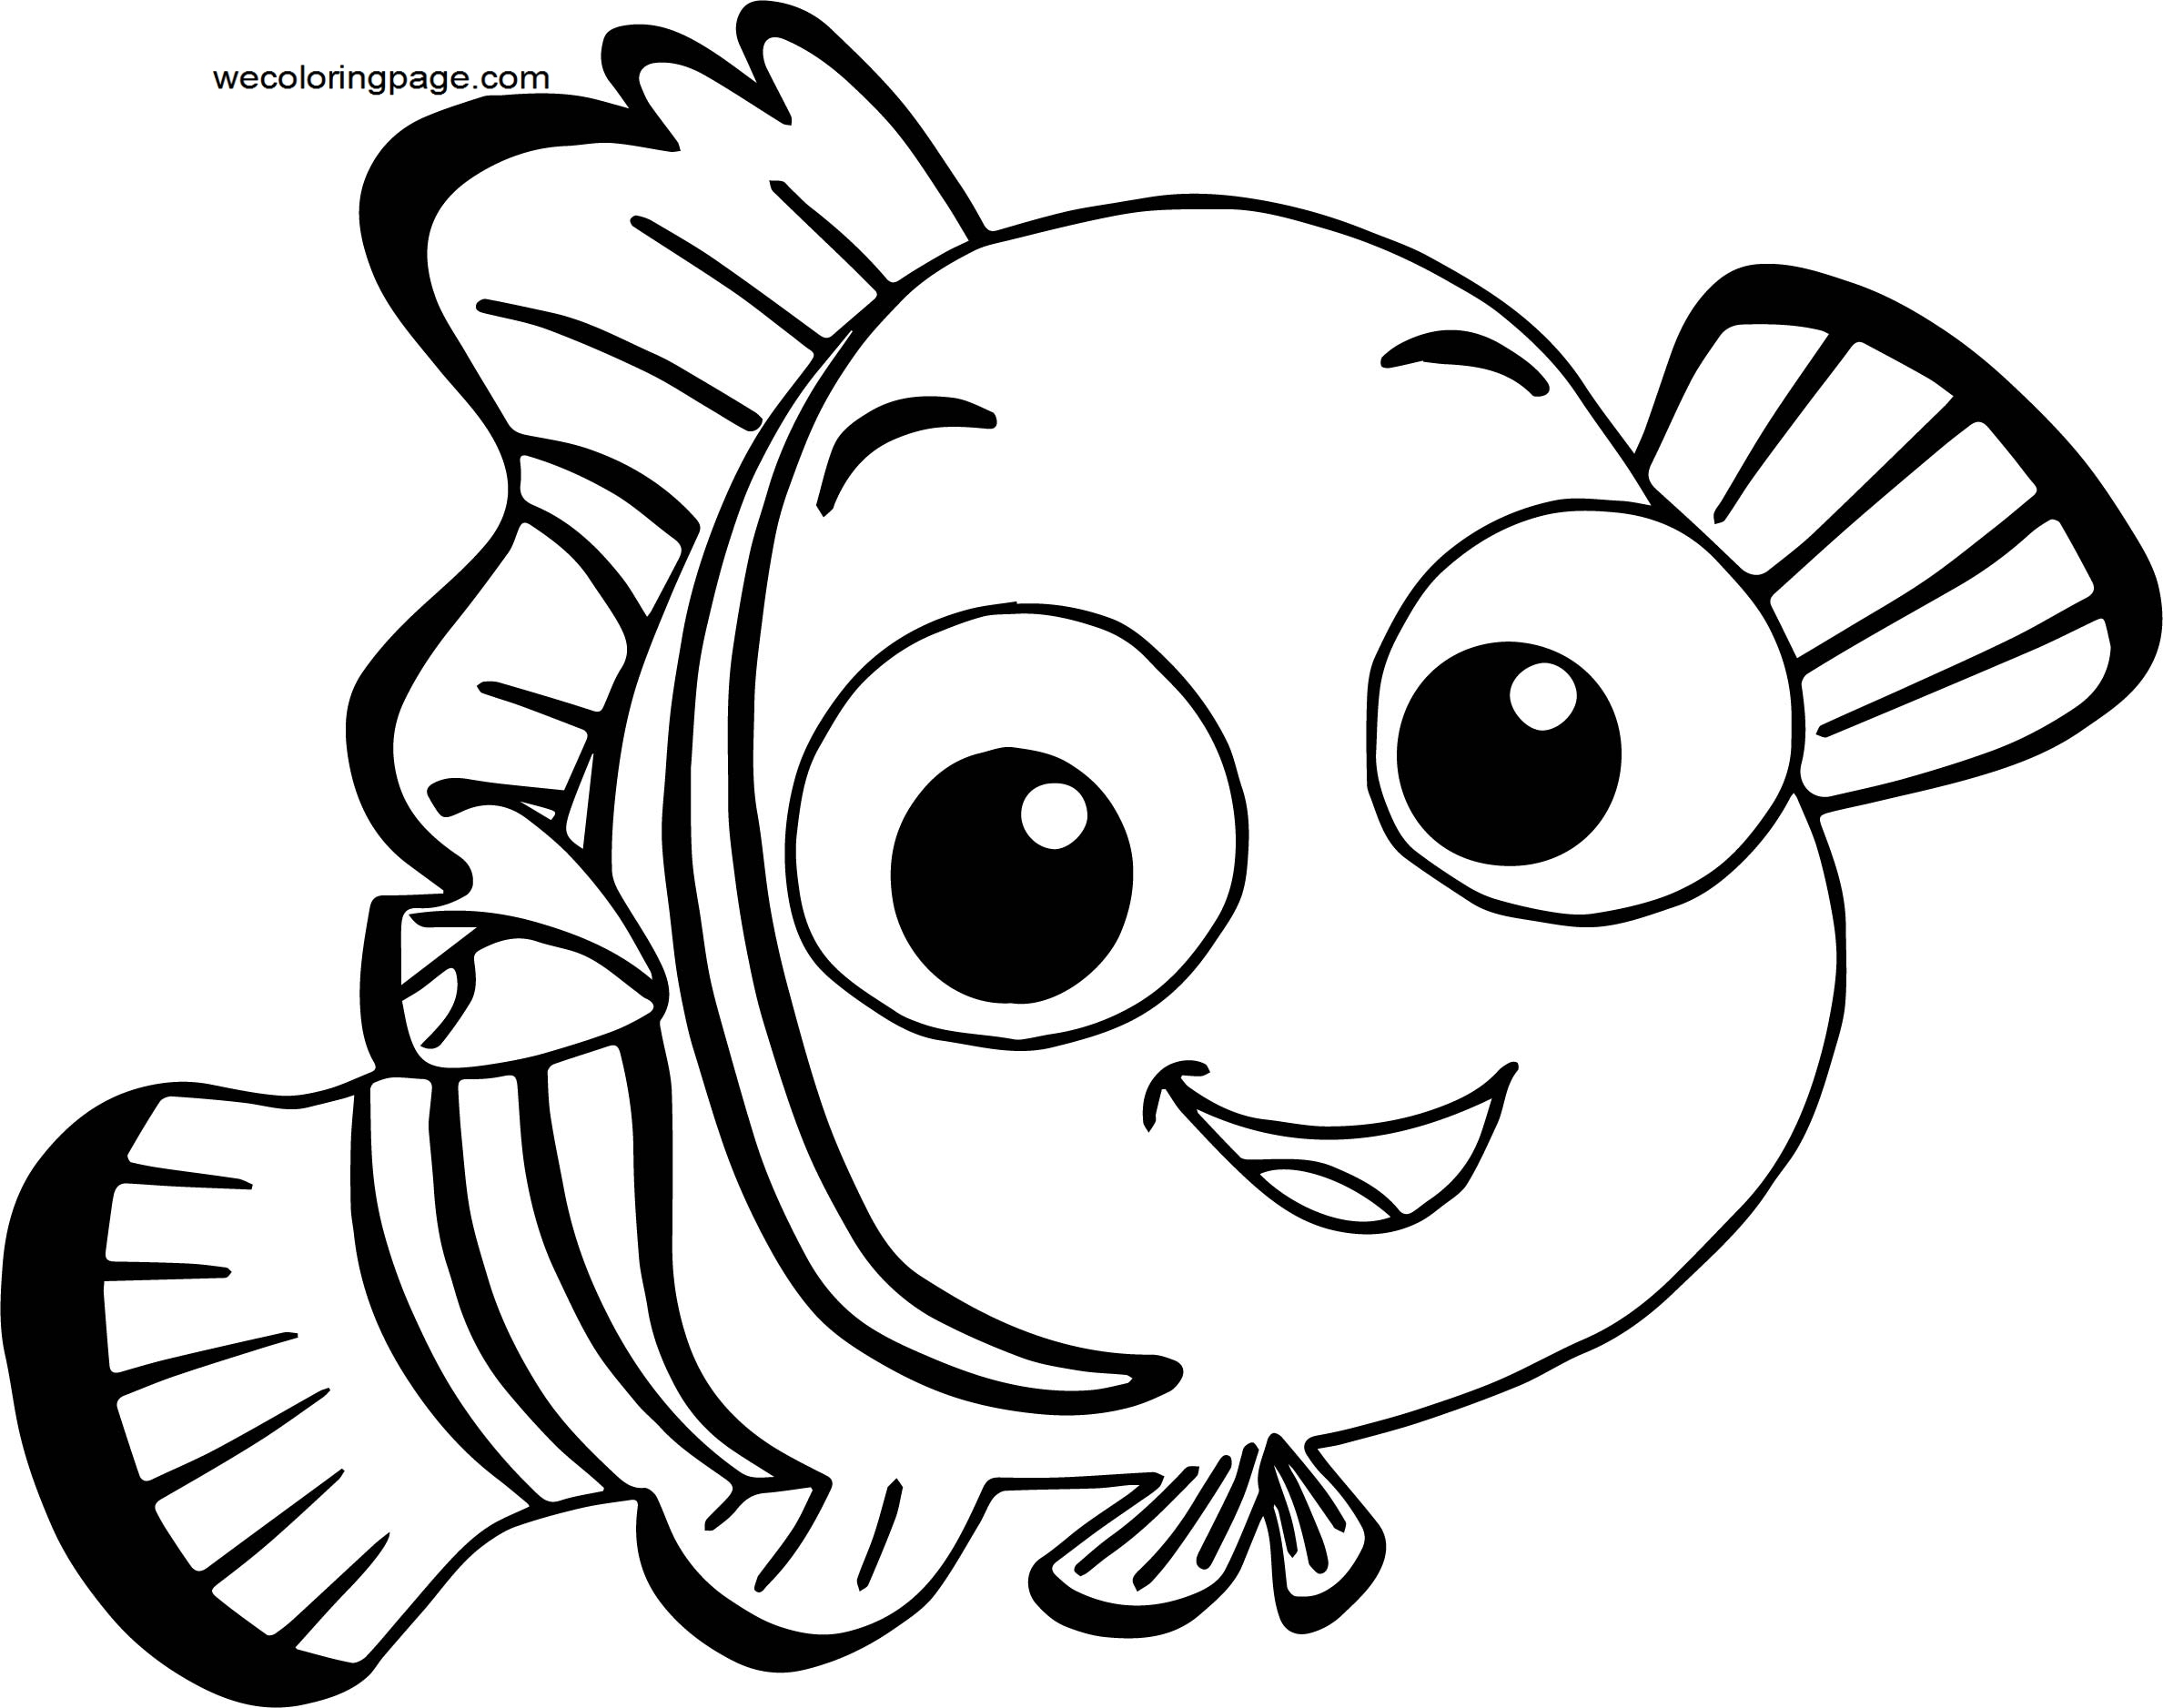 Disney Finding Nemonemo 3 Coloring Pages